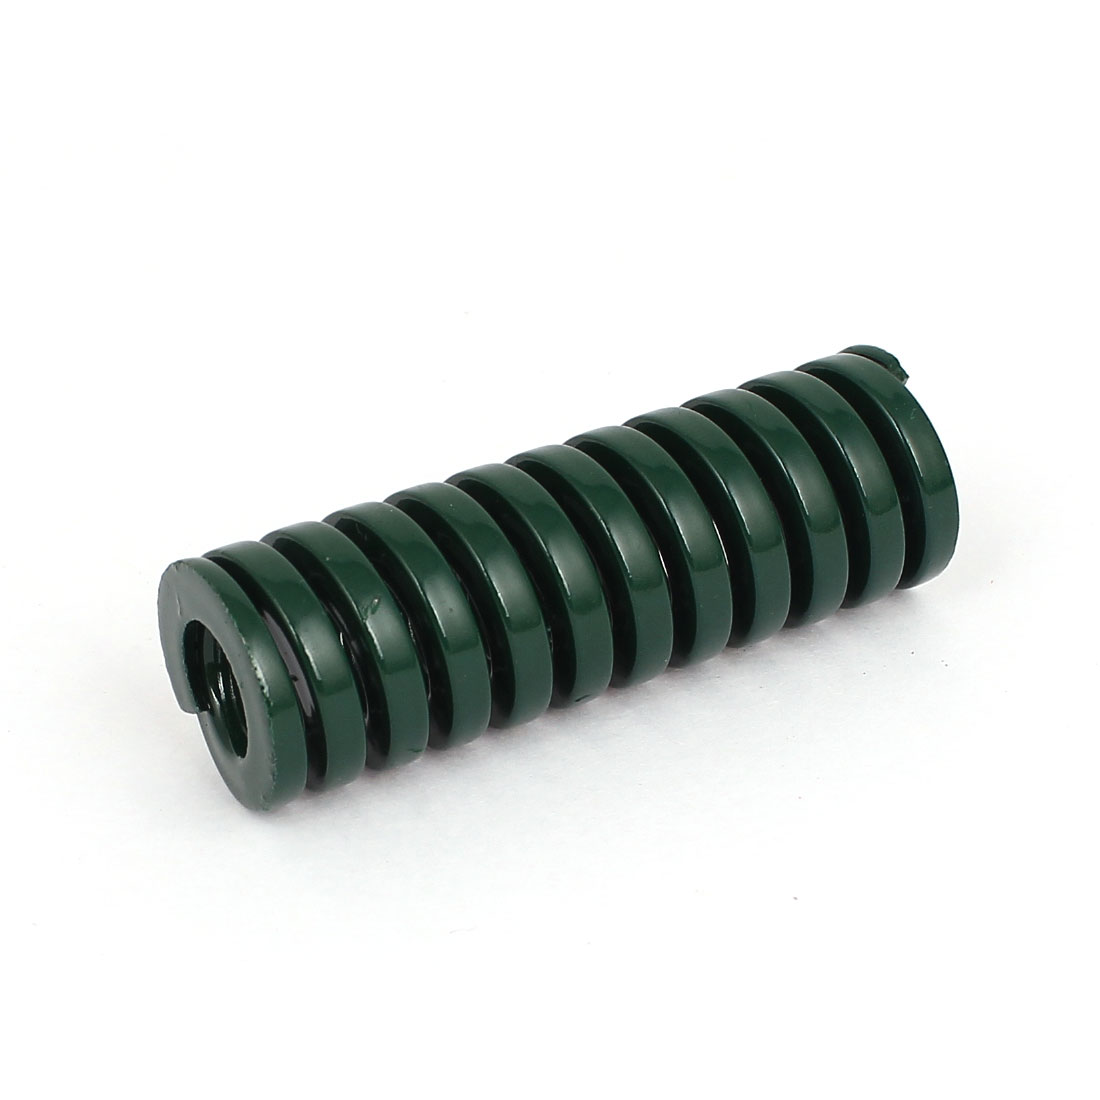 20mm OD 60mm Long Heavy Load Coil Stamping Compression Mold Die Spring Green